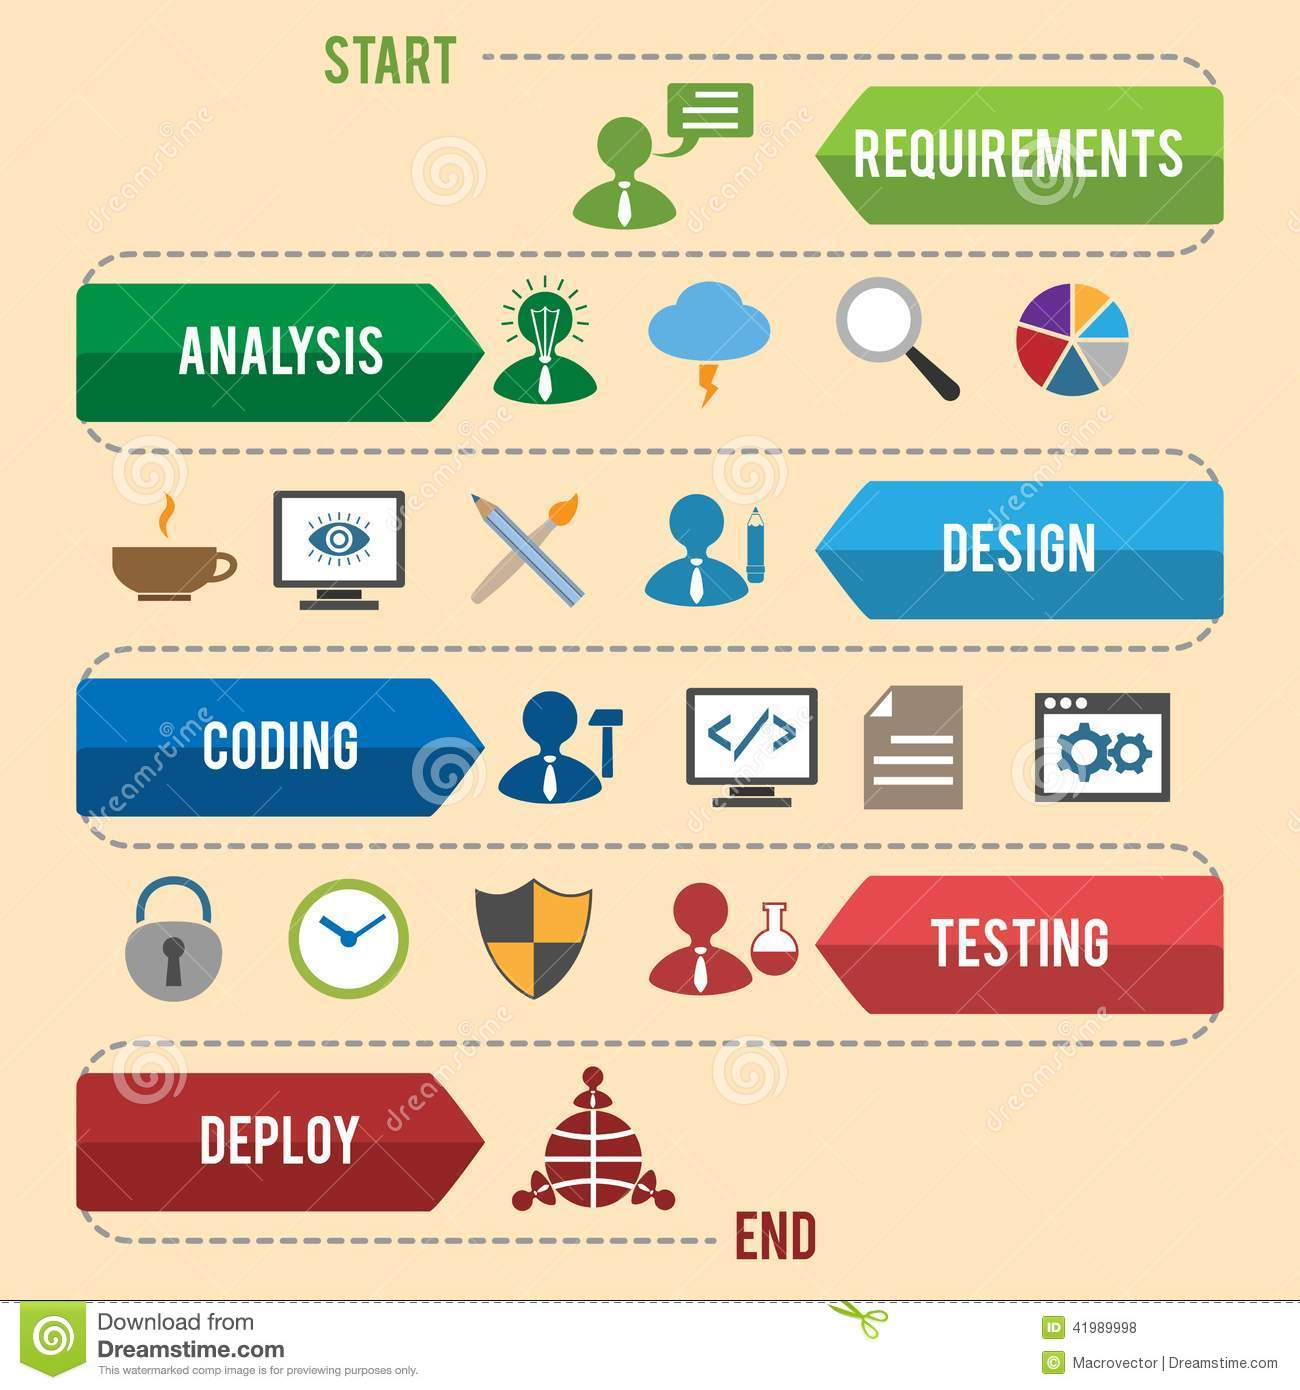 software-development-infographics-workflow-process-coding-testing-analysis-infographic-vector-illustration-41989998